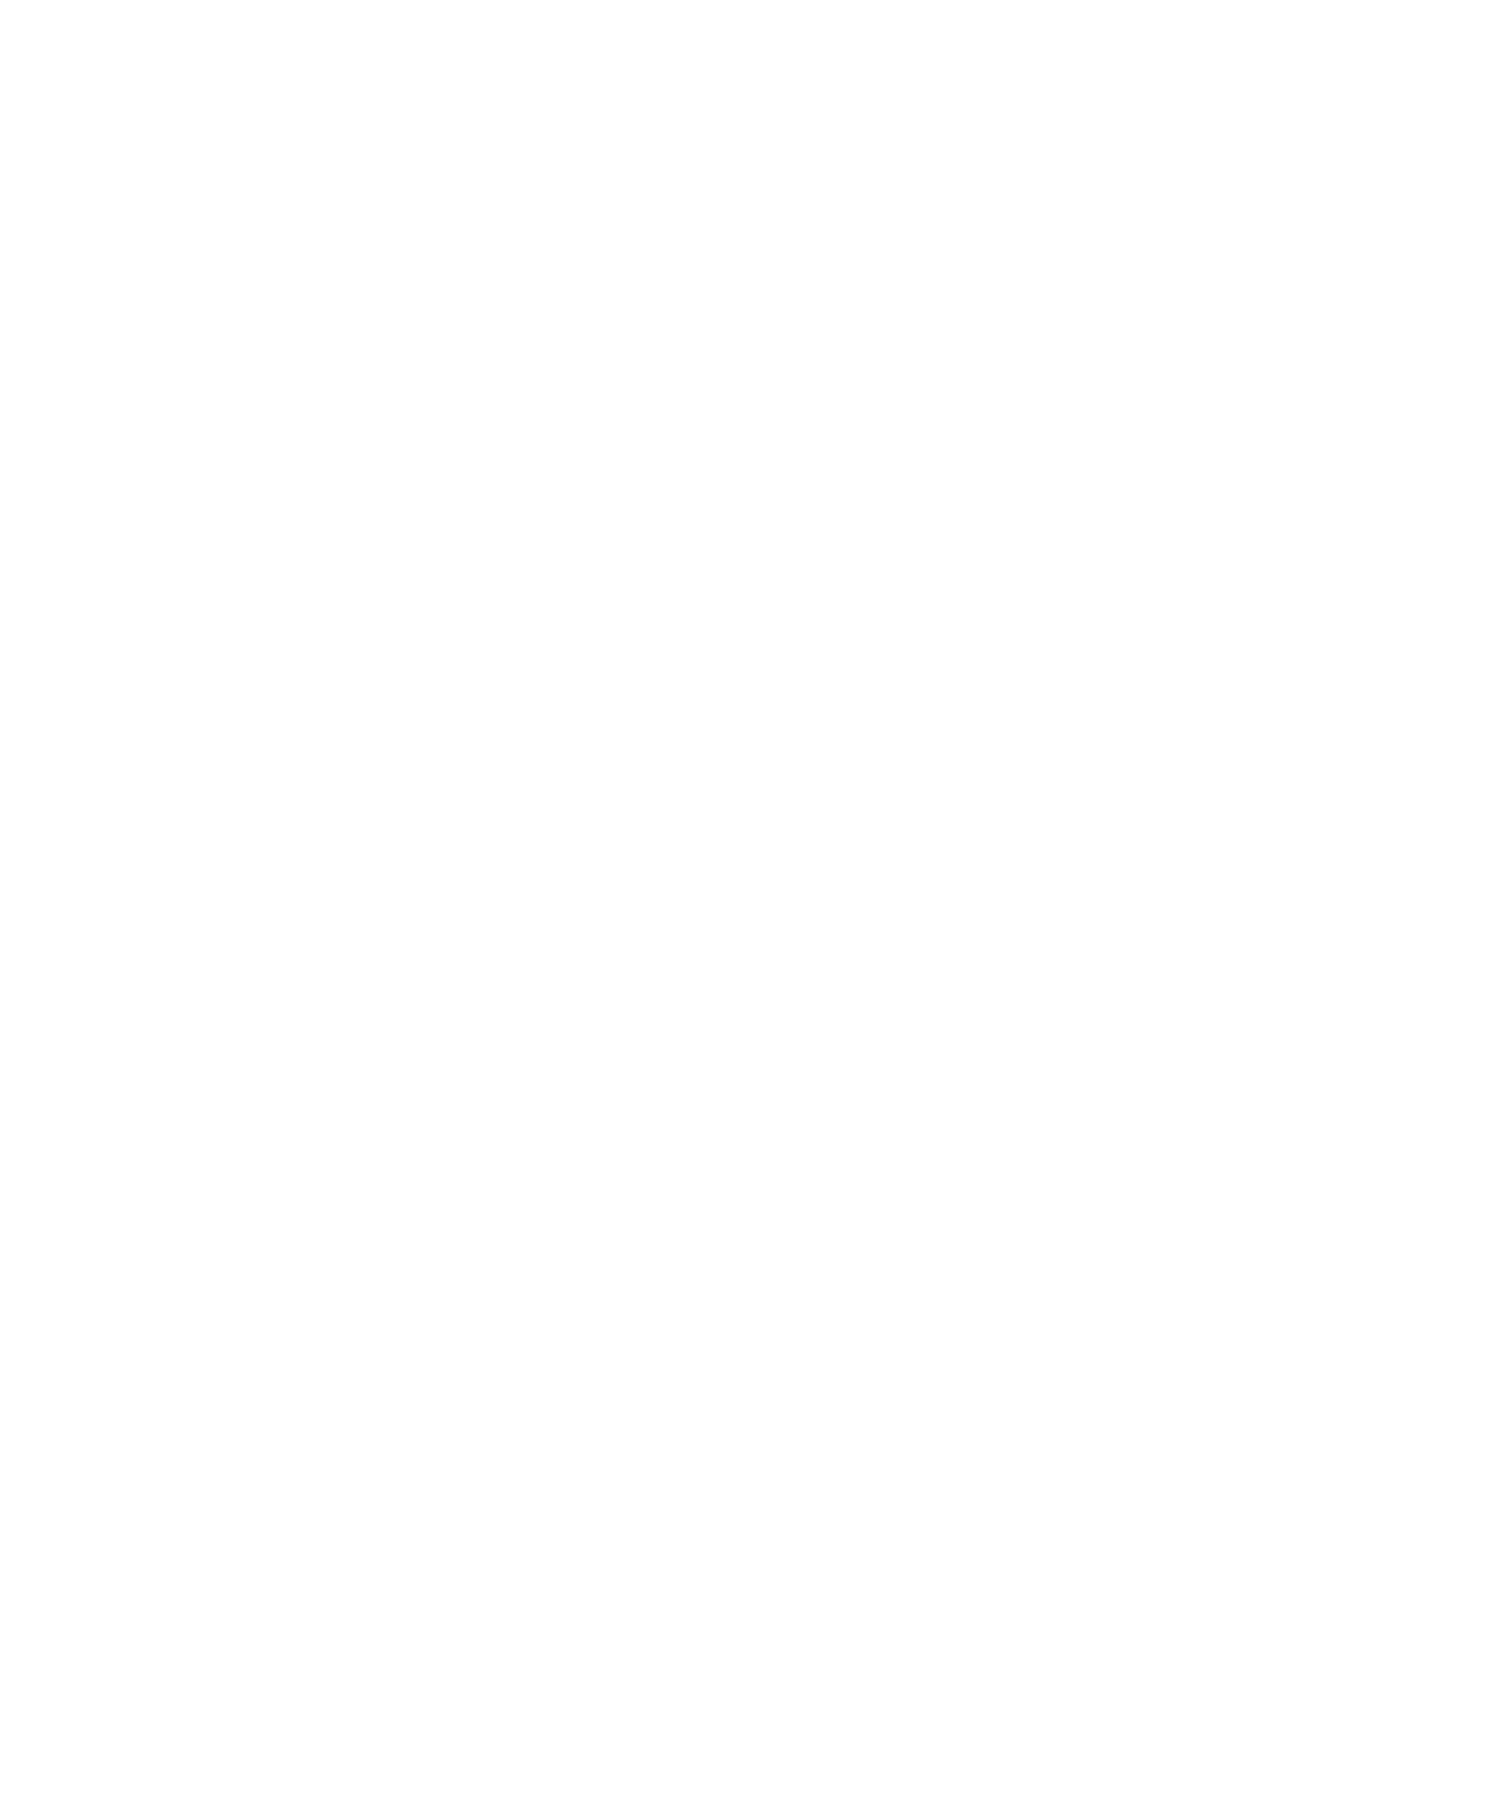 Collaborative Painting UK